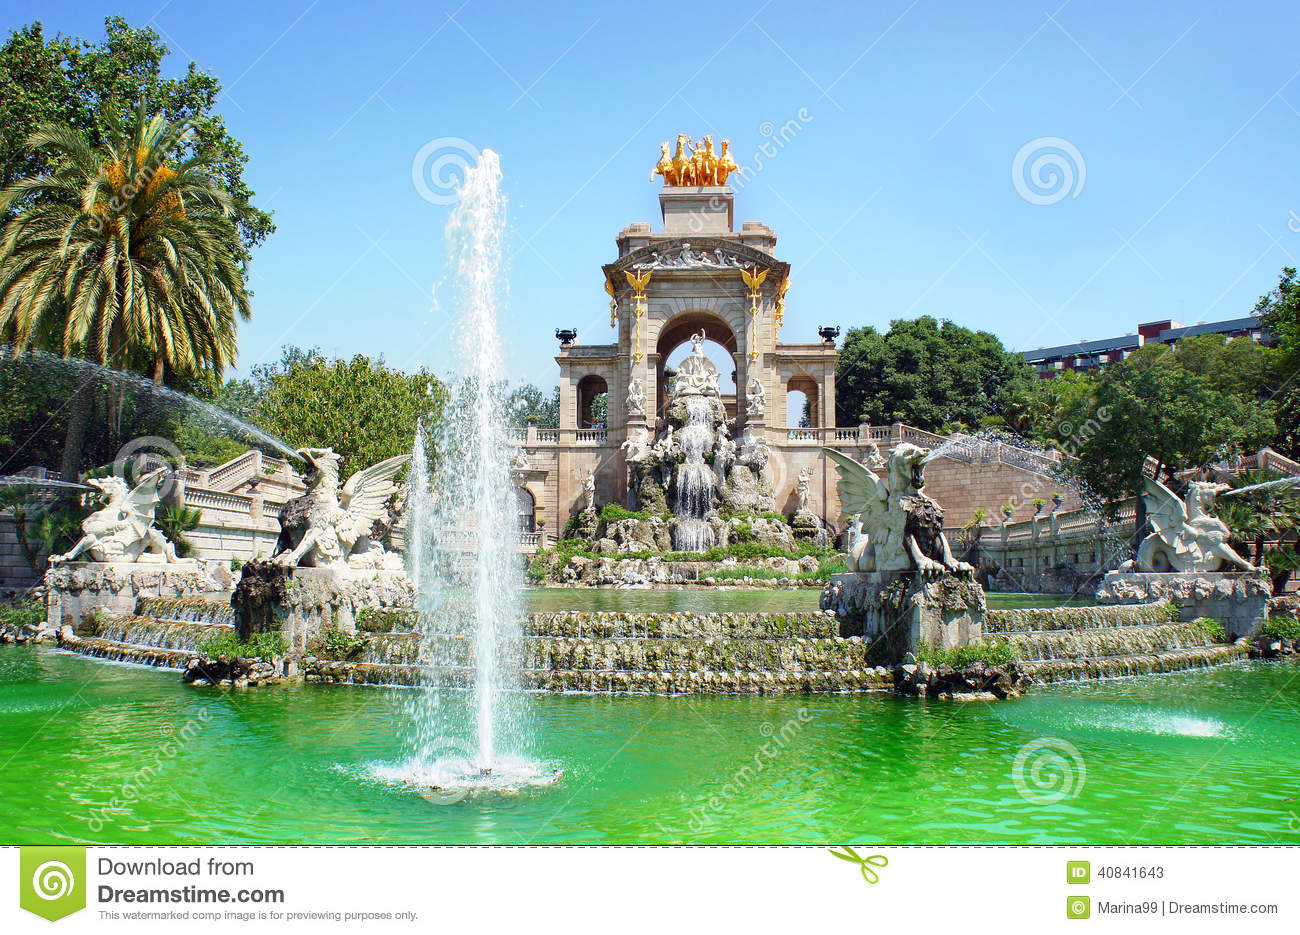 wasserfall und brunnen von parc de la ciutadella barcelona stockbild bild von niemand. Black Bedroom Furniture Sets. Home Design Ideas